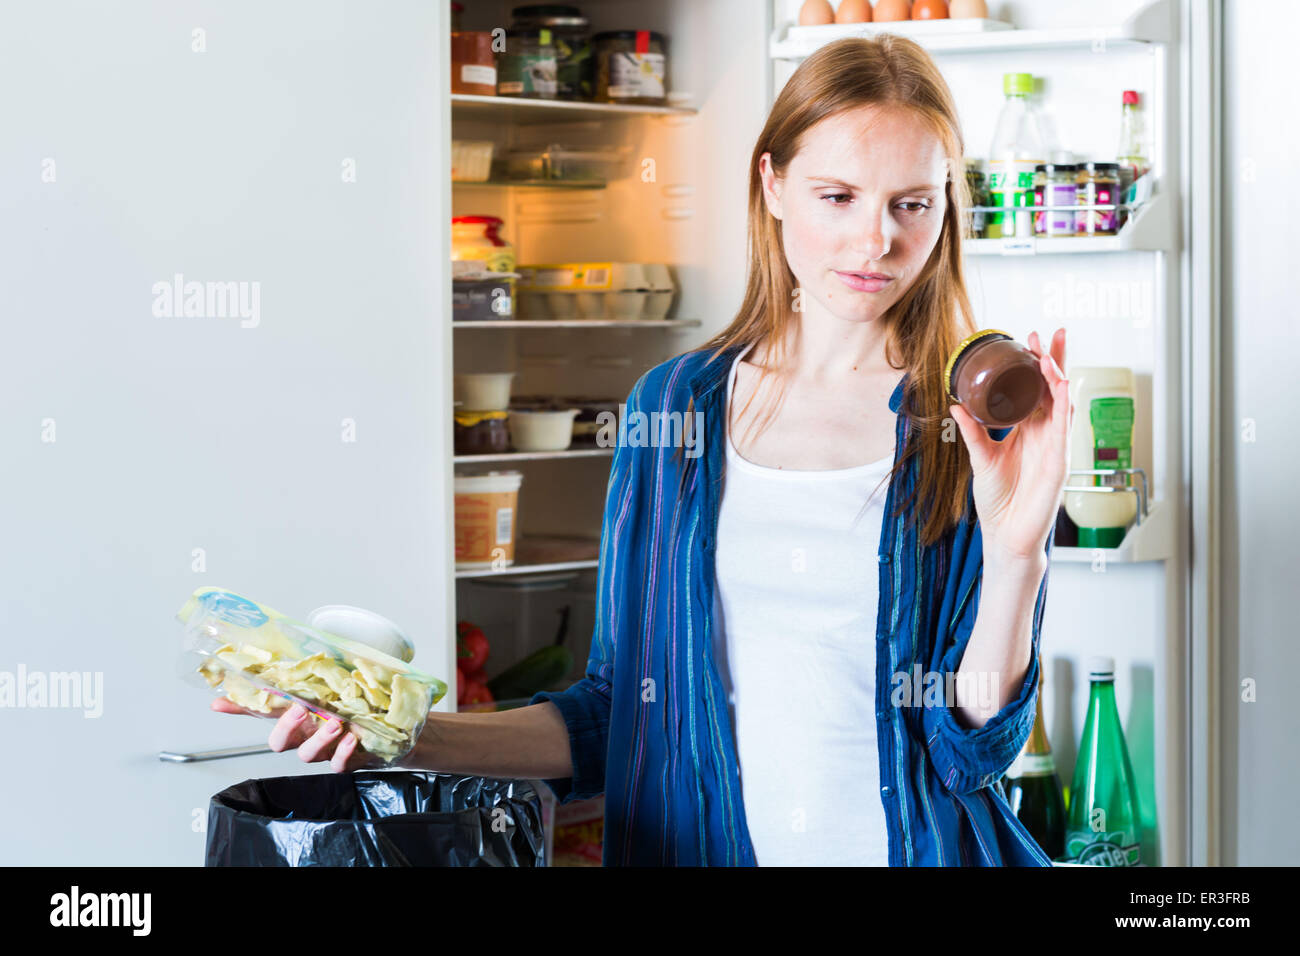 Woman throwing food in the trash. - Stock Image